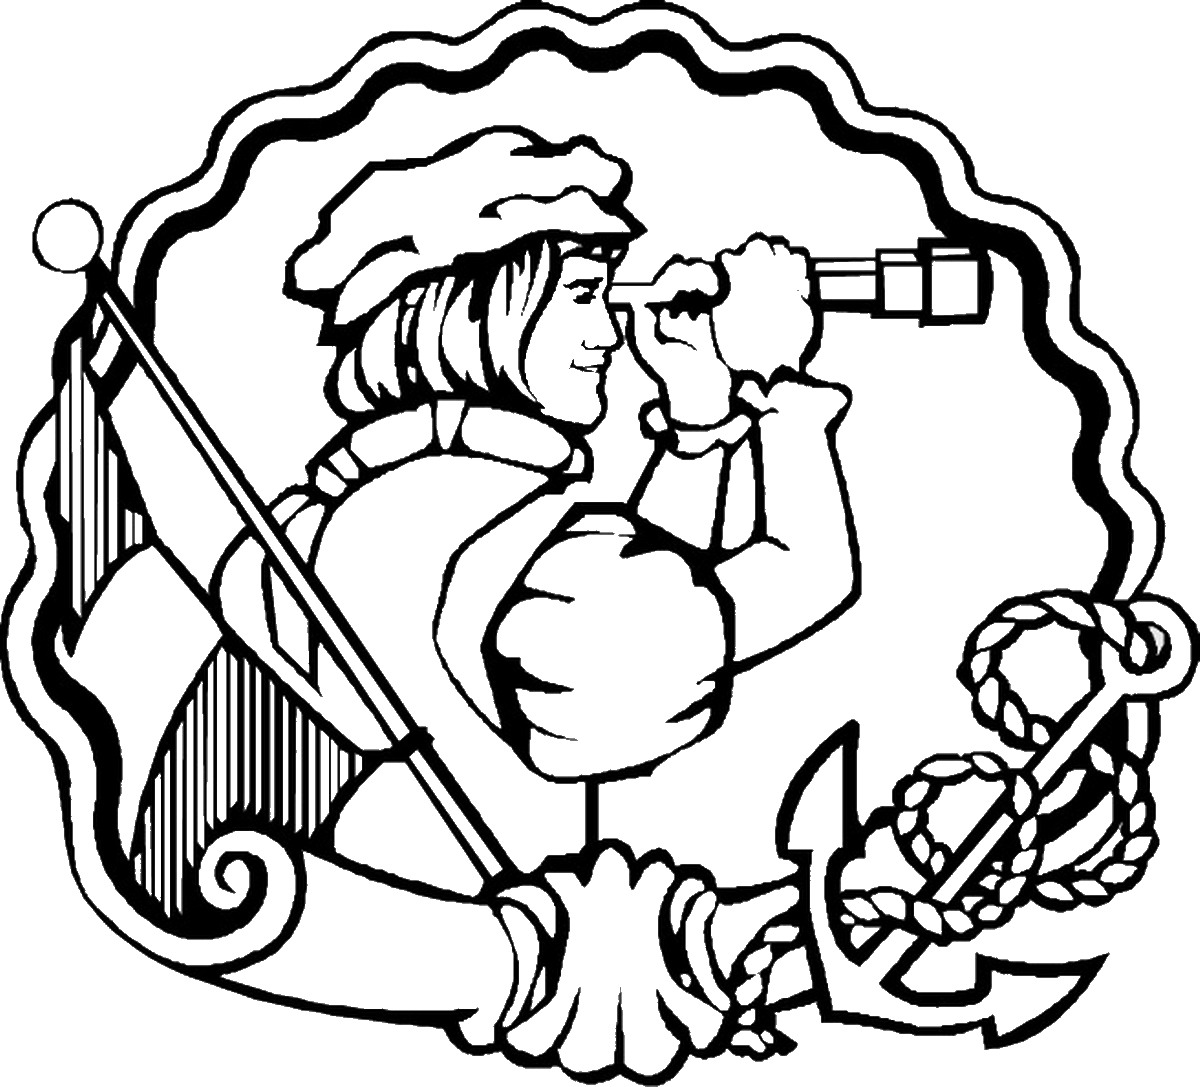 Christopher columbus clipart outline. Day drawing at getdrawings